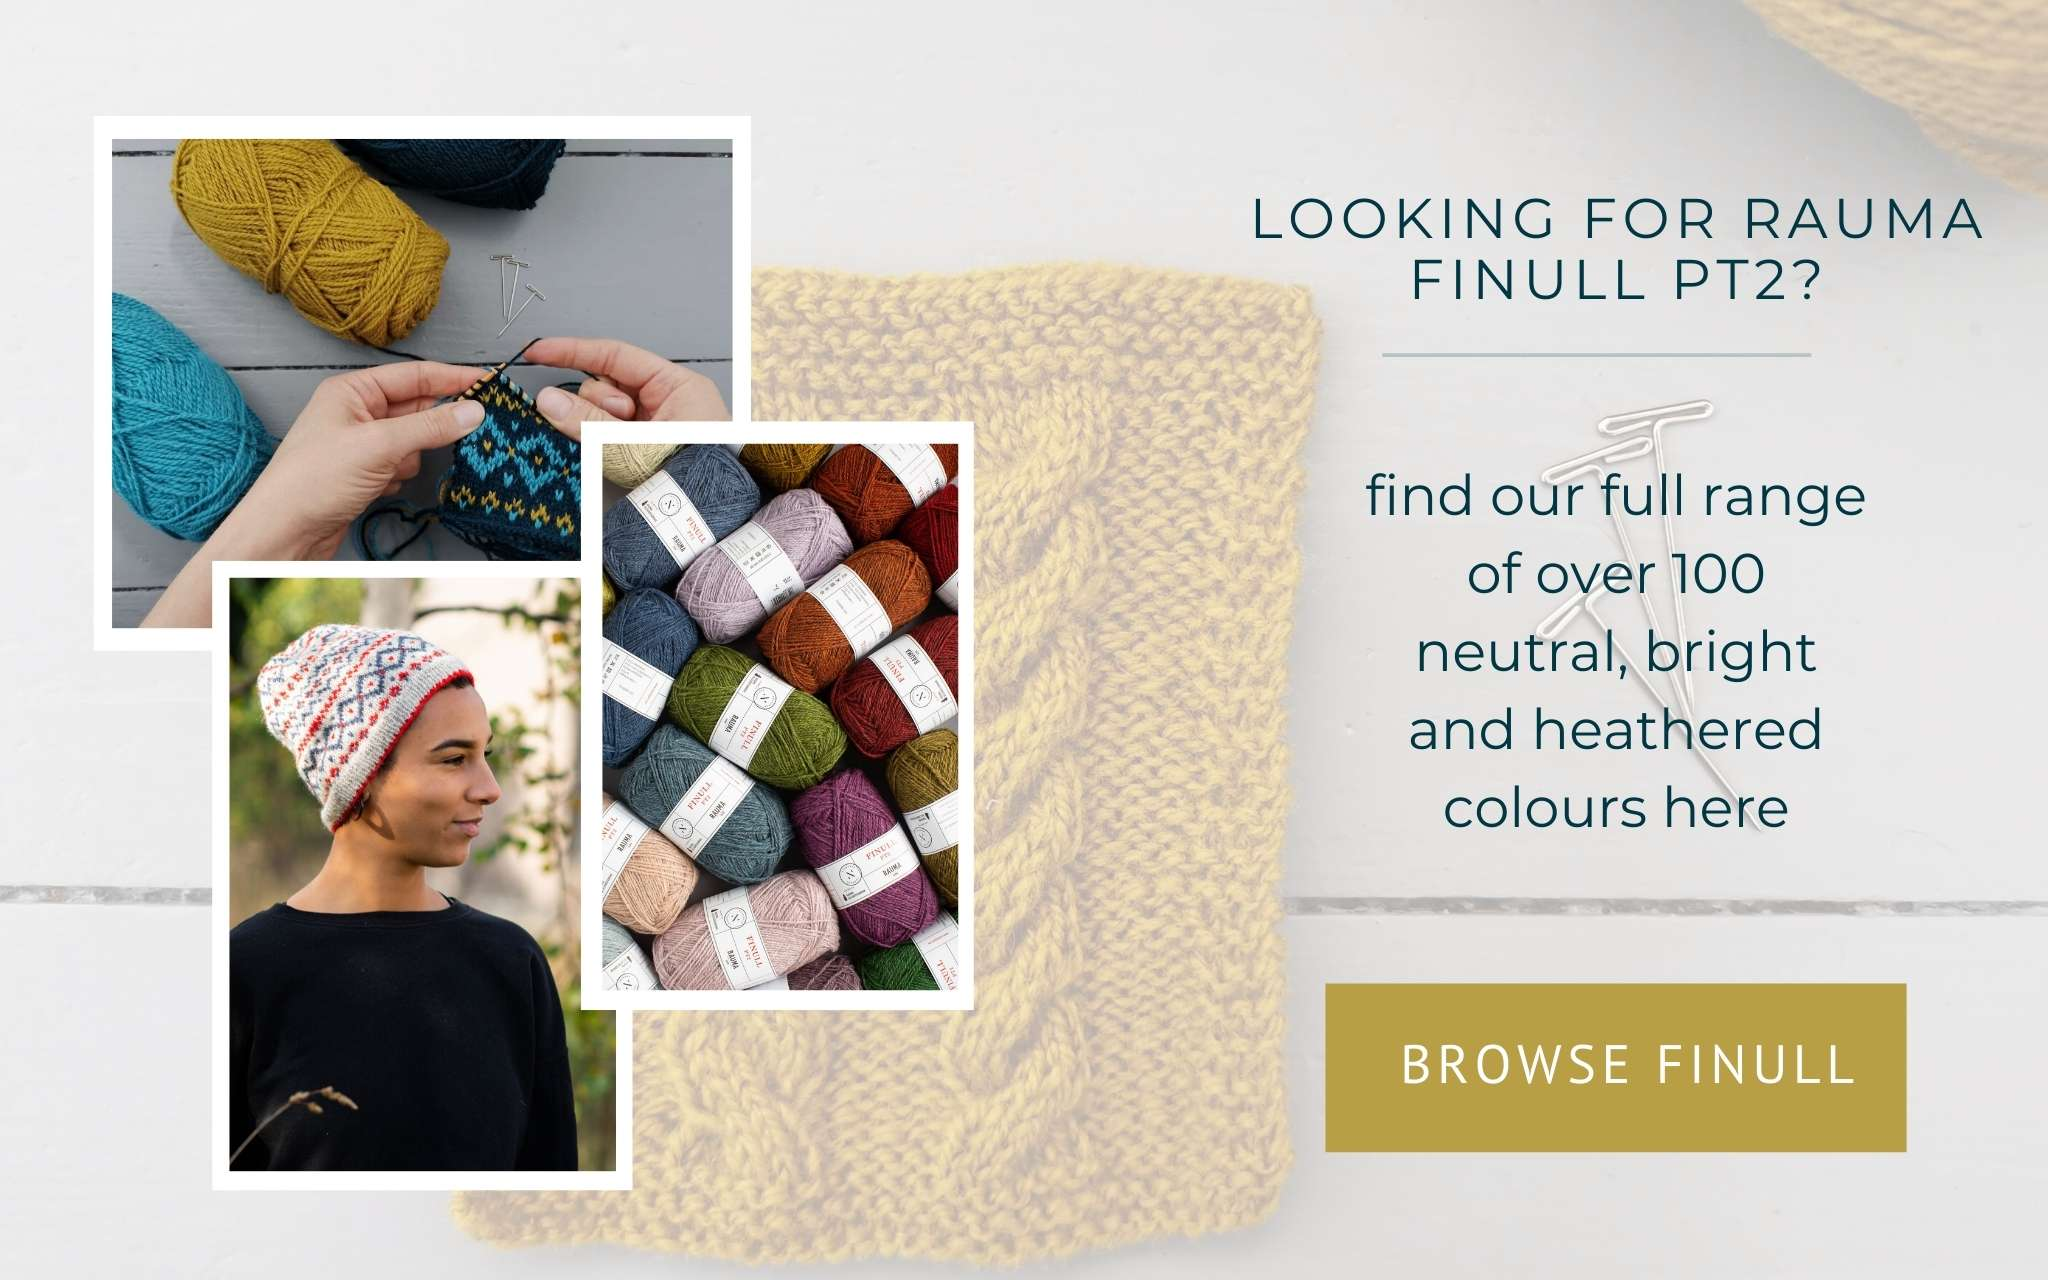 image of hands knitting a swatch, yarn tightly piled together and a model wearing a colourwork hat